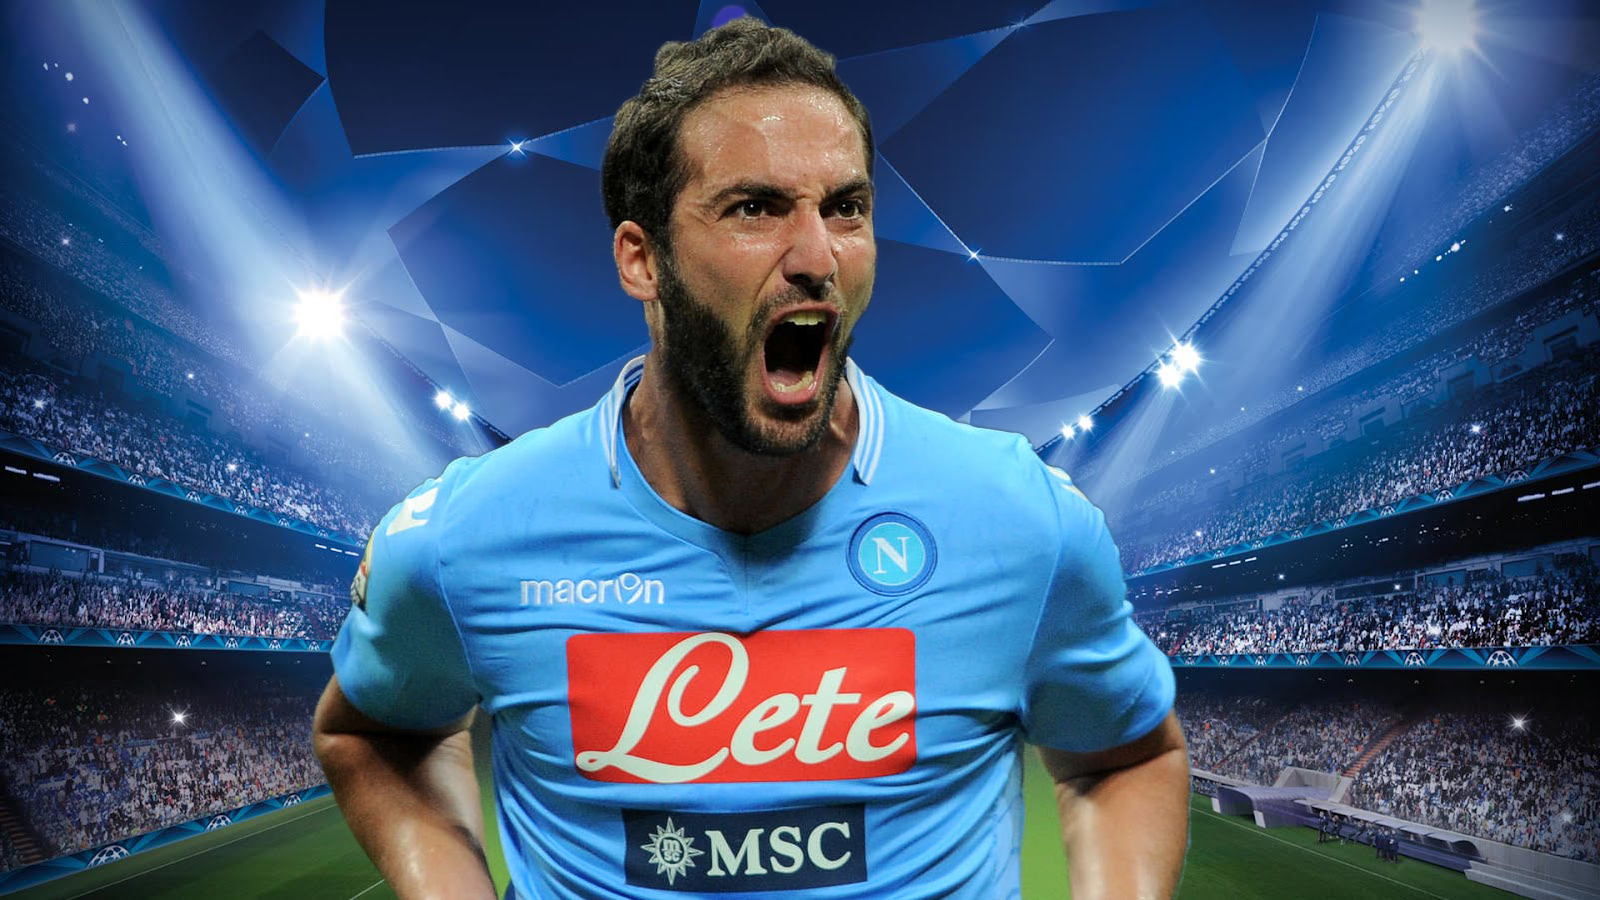 Gonzalo Higuain Wallpapers 1600x900